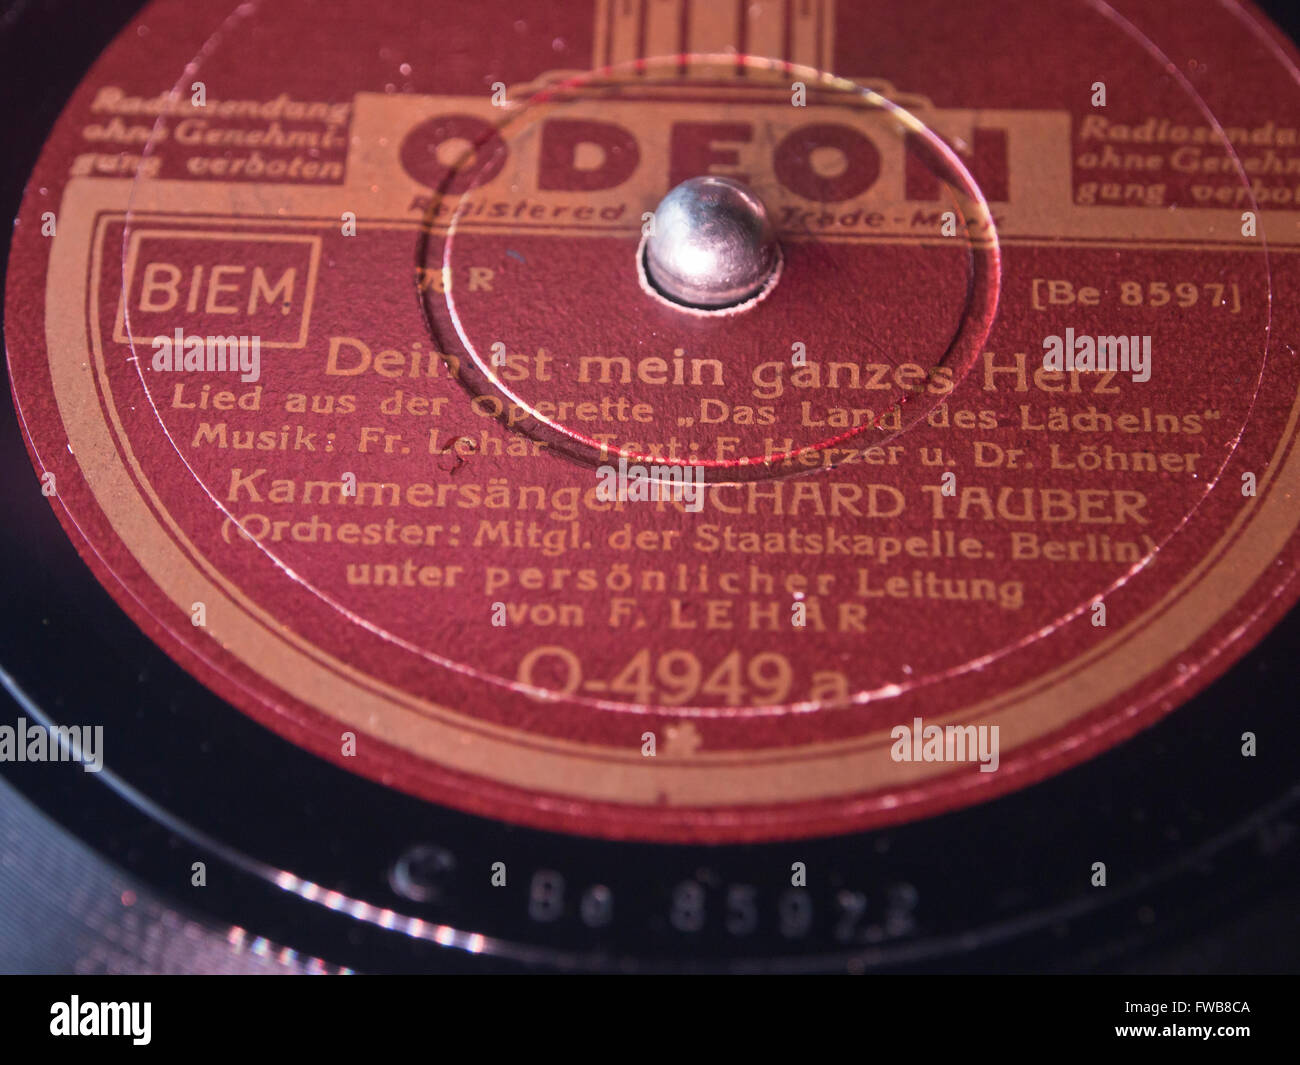 Closeup of antique record label, Richard Tauber sings ' Dein ist mein ganzes Hertz' by Lehar on Odeon record - Stock Image